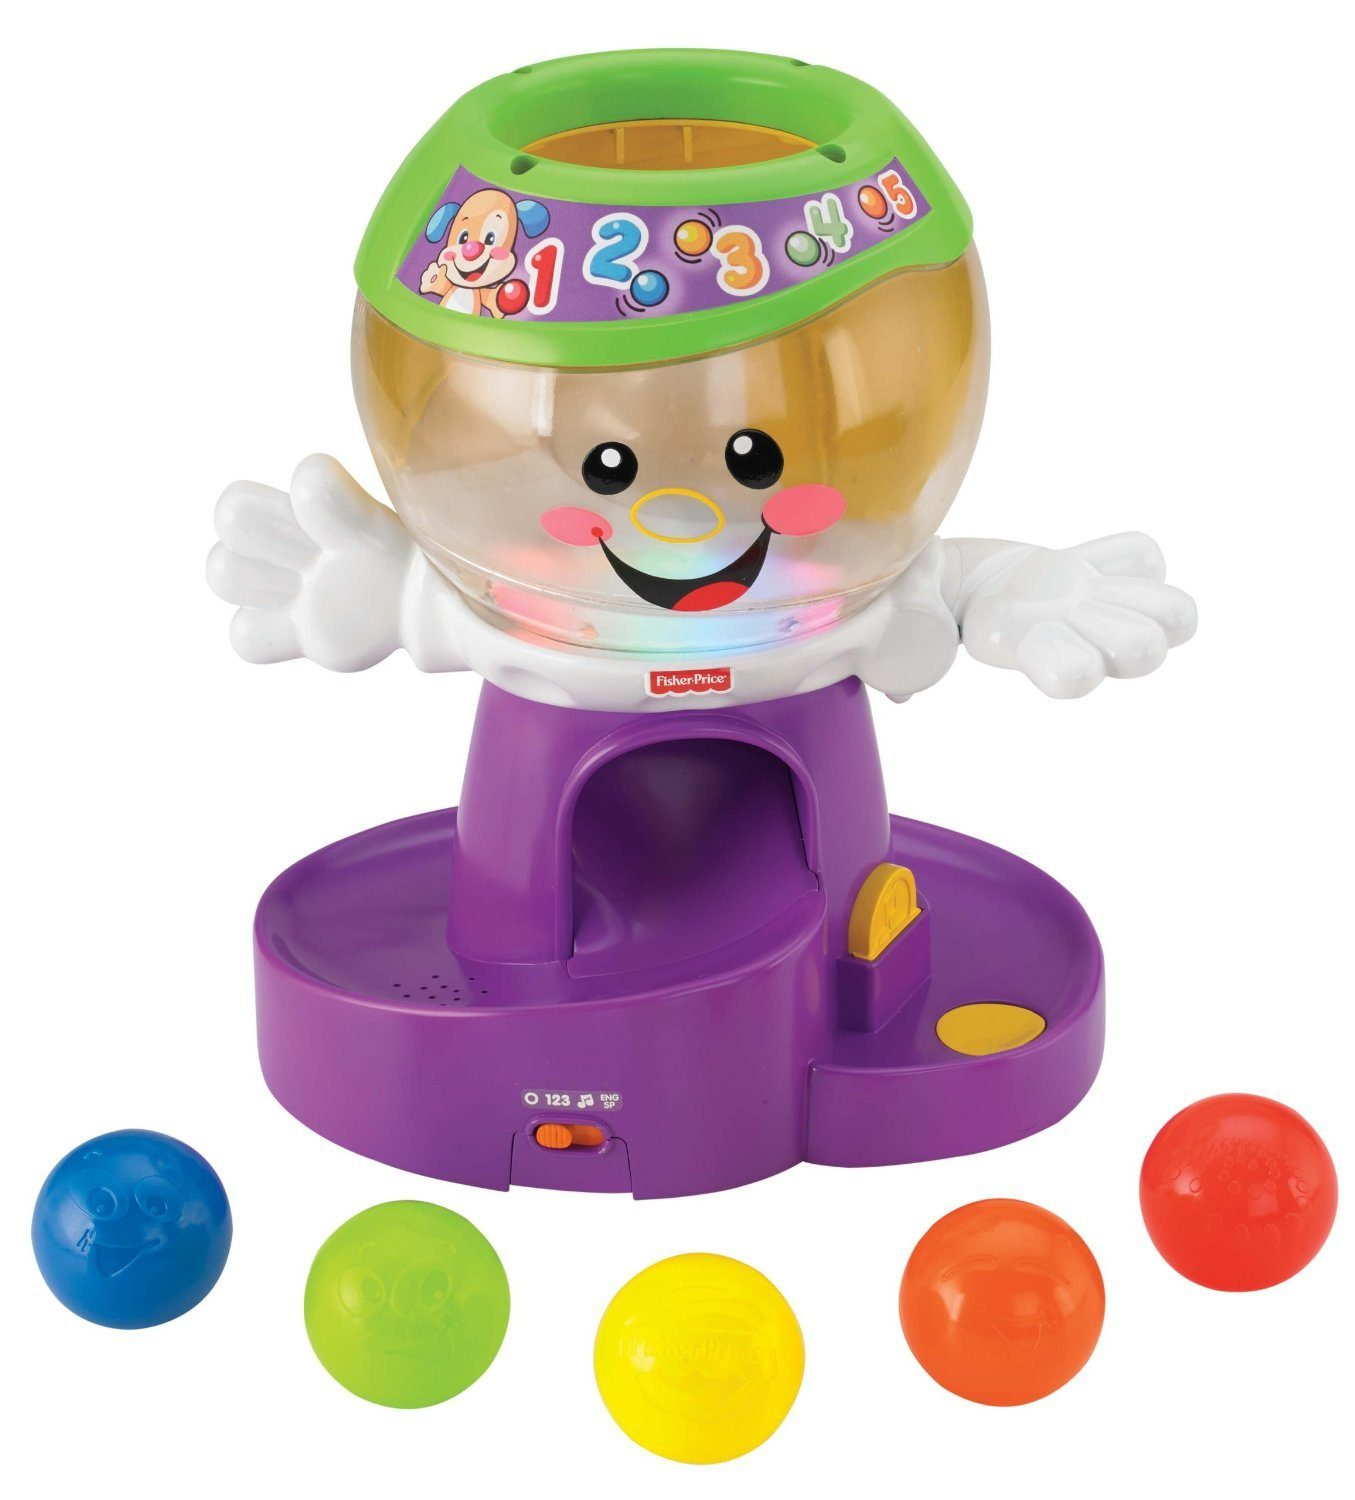 Fisher-Price Laugh & Learn Count and Color Gumball Only $11.99 (Reg. $24.99)!